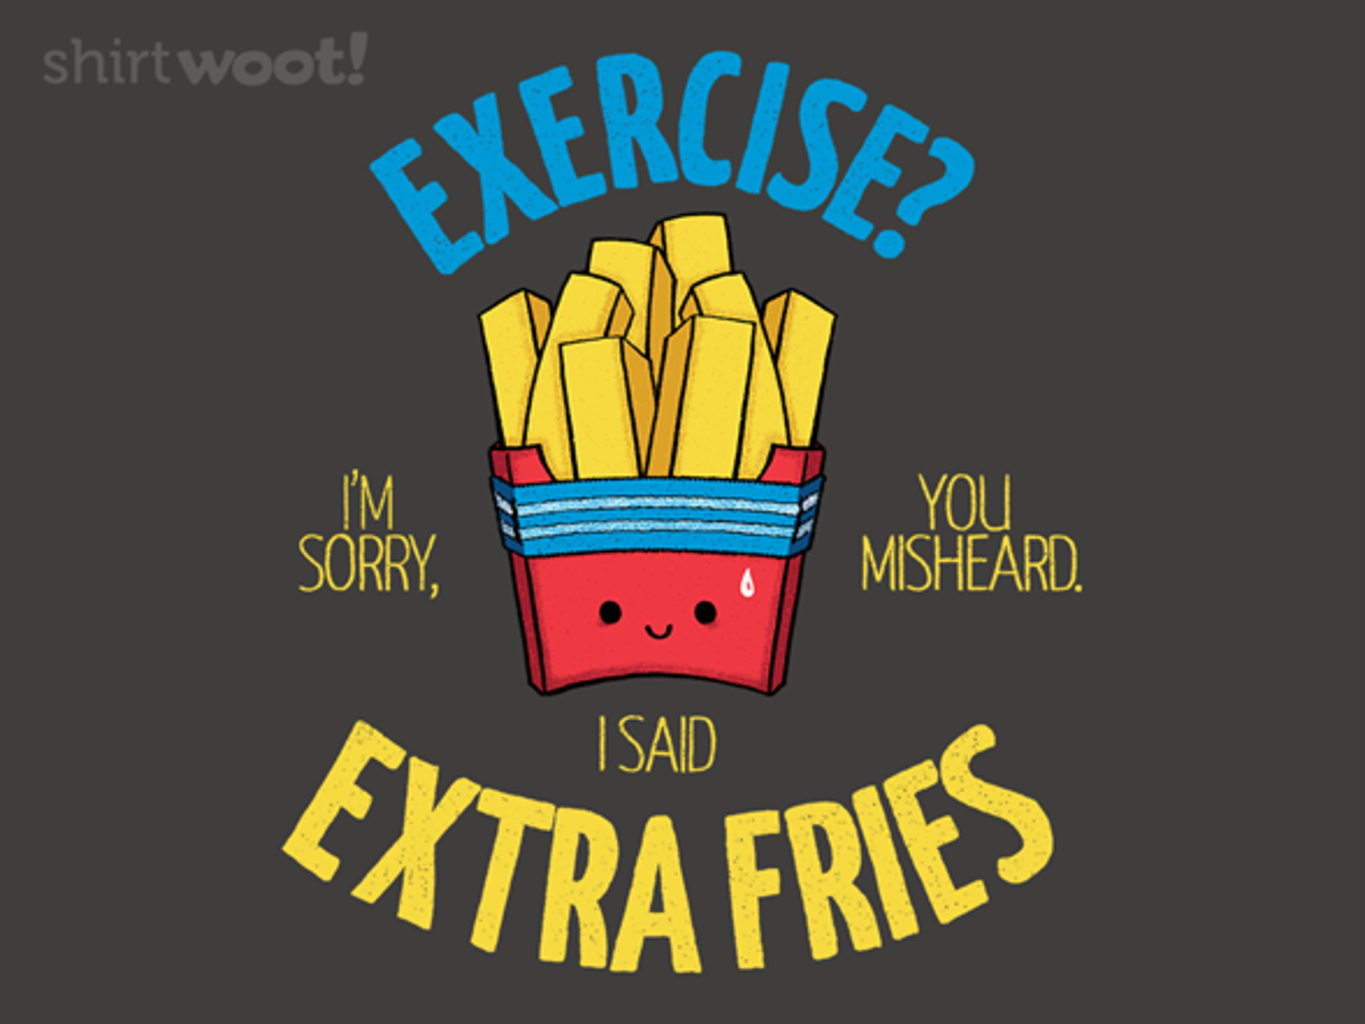 Woot!: Extra Fries, Please